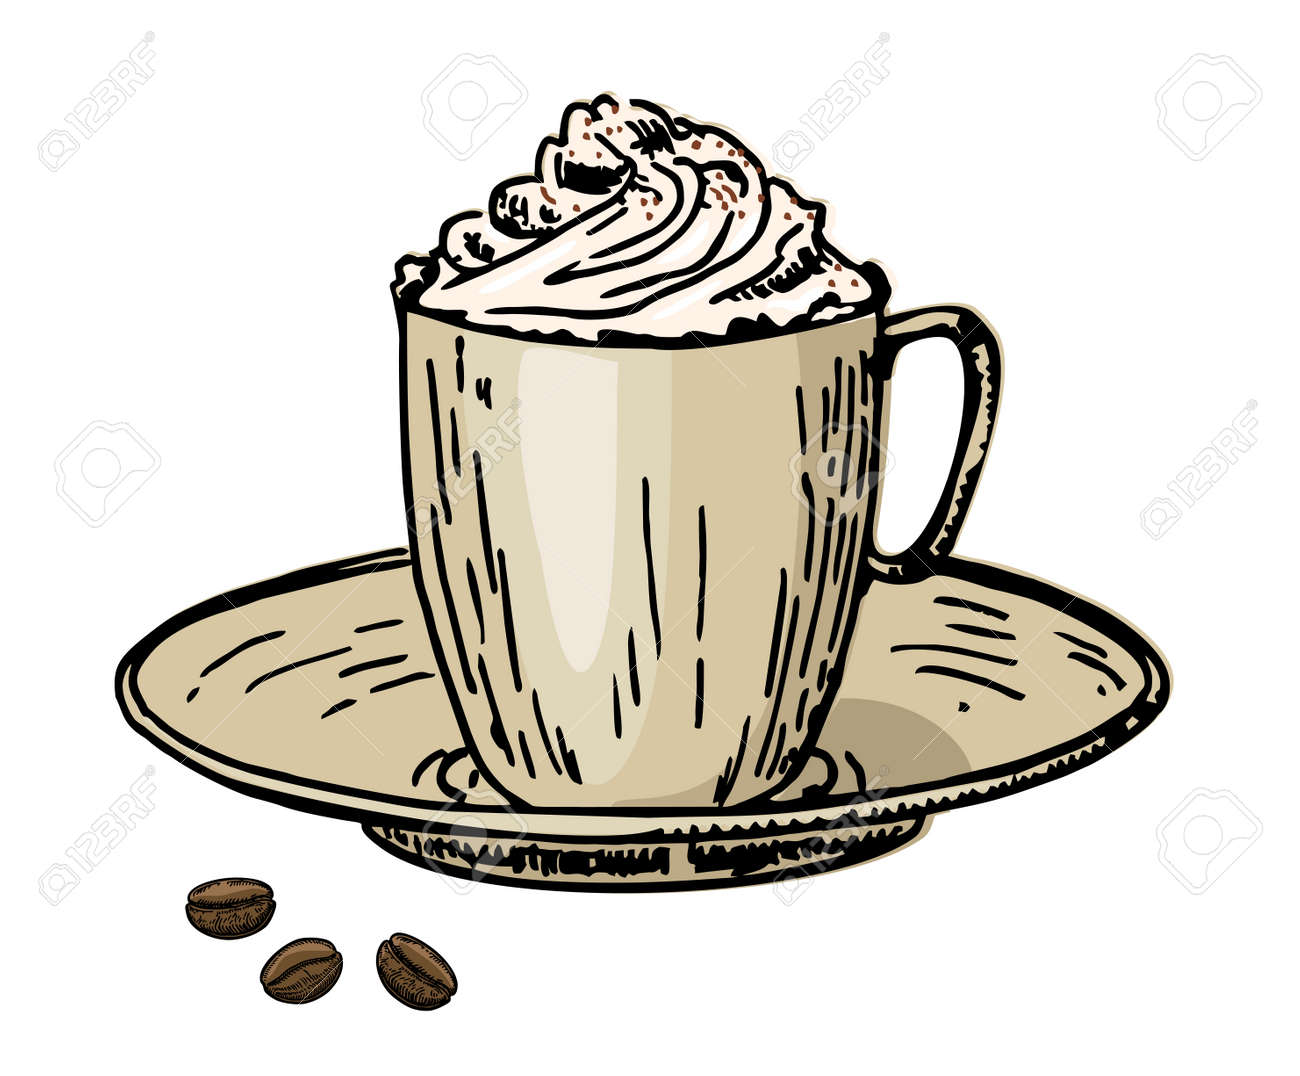 Viennese coffee. Coffee with cream in a cup and coffee beans. Caffe latte whipped cream cap - 169743737